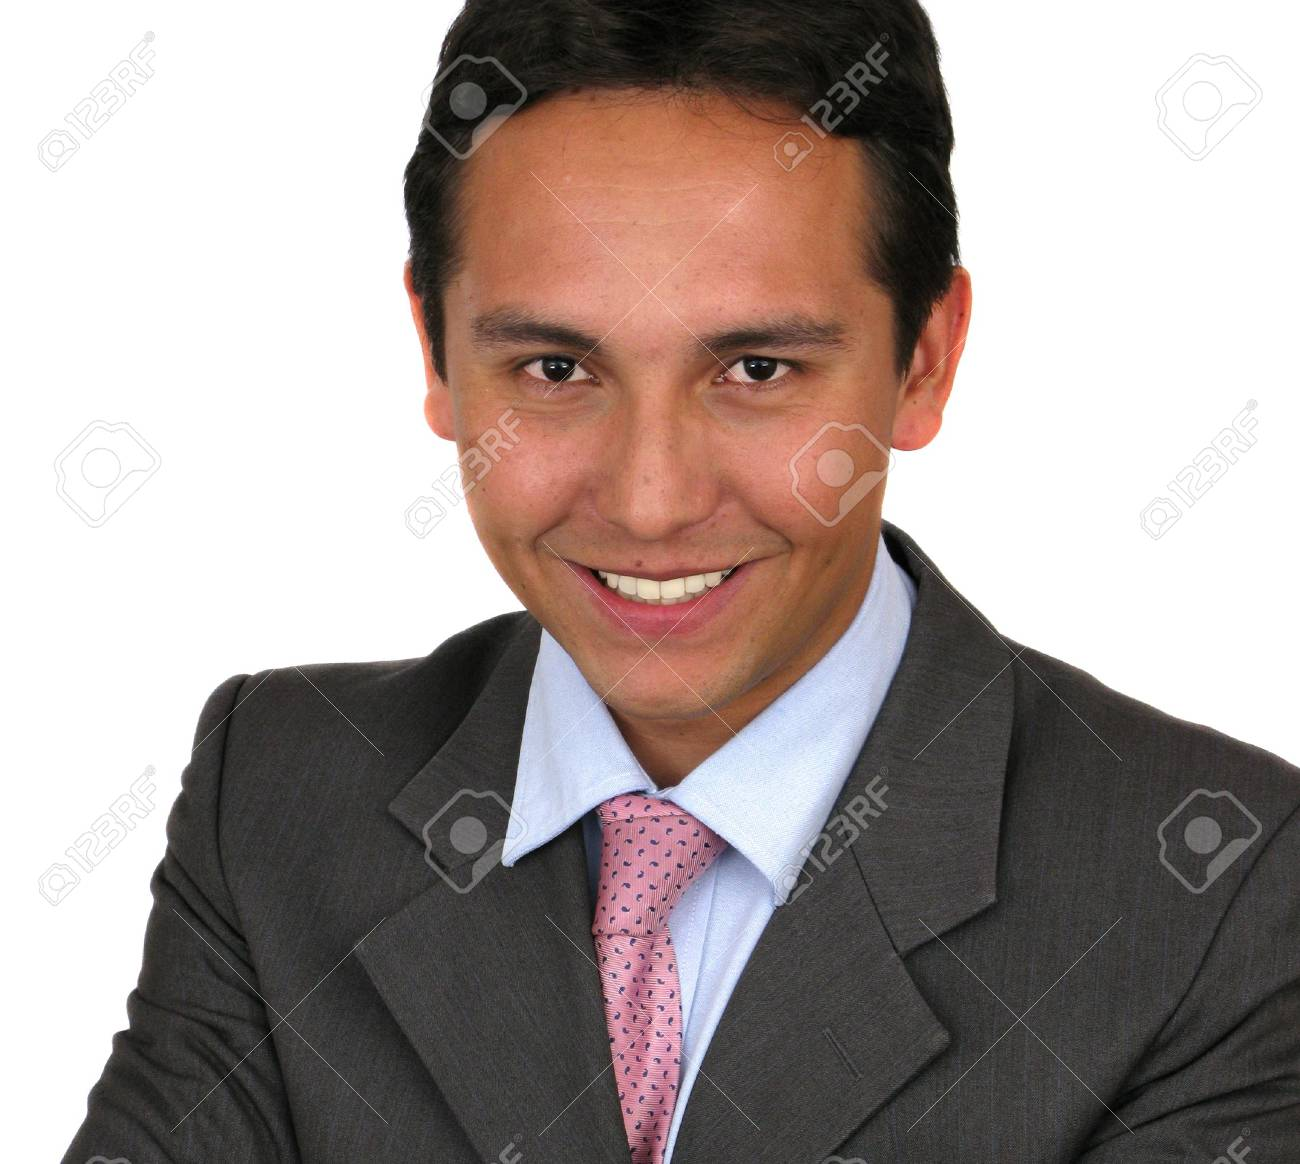 A friendly looking man in a suit with his arms crossed over white Stock Photo - 7313571